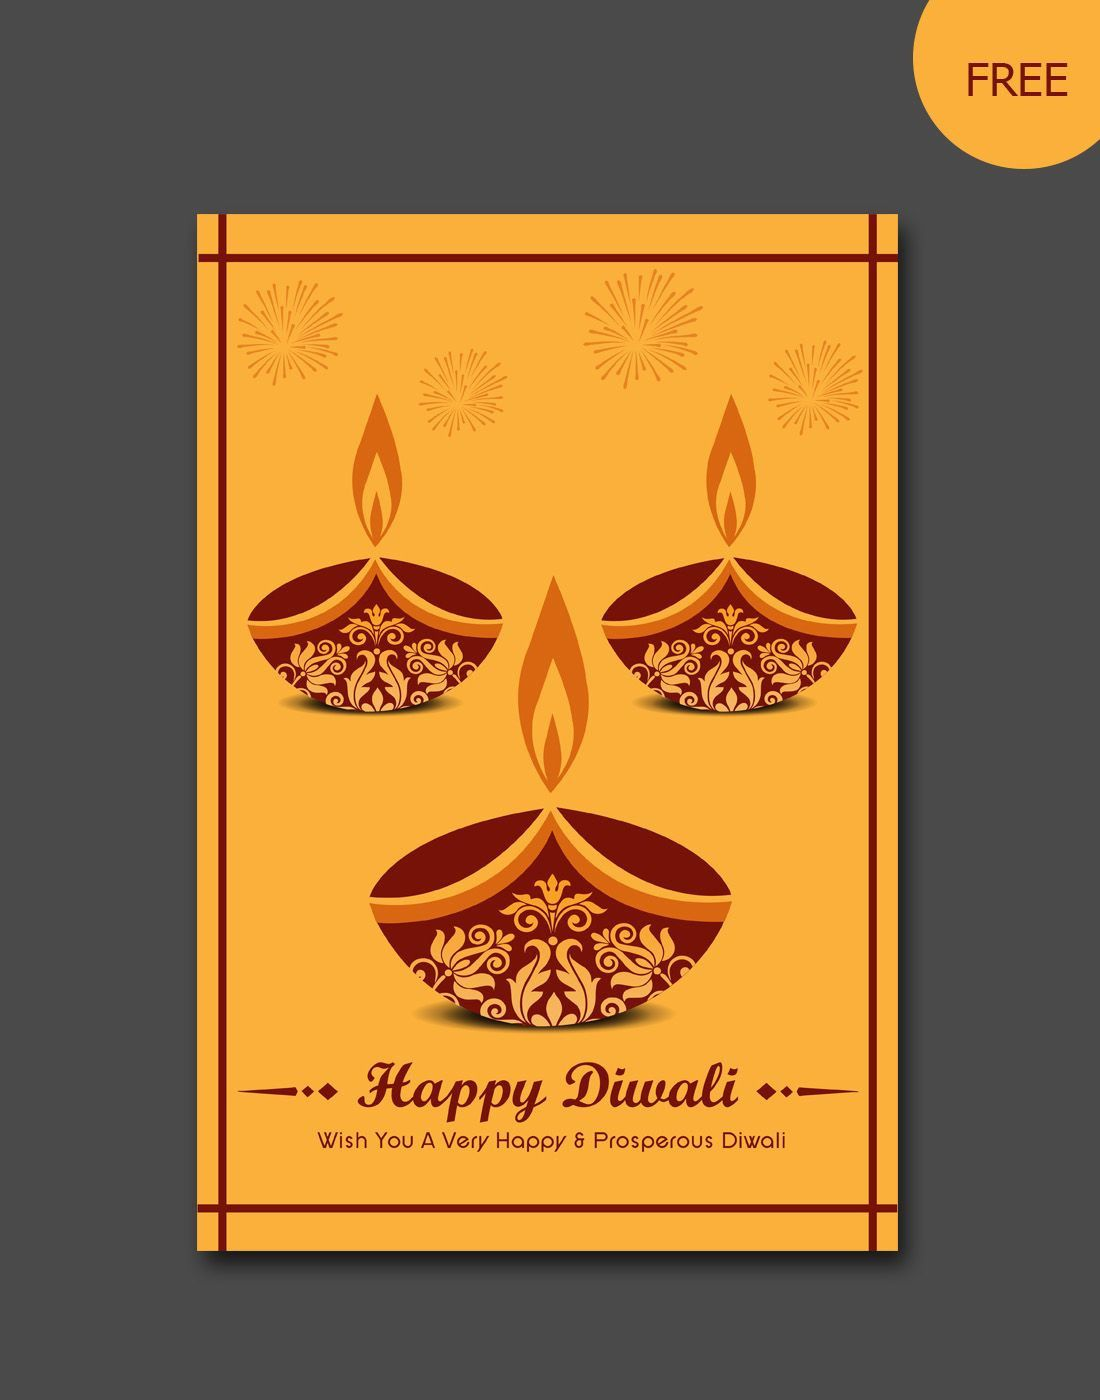 007 Dreaded Diwali Party Invite Template Free Picture Full